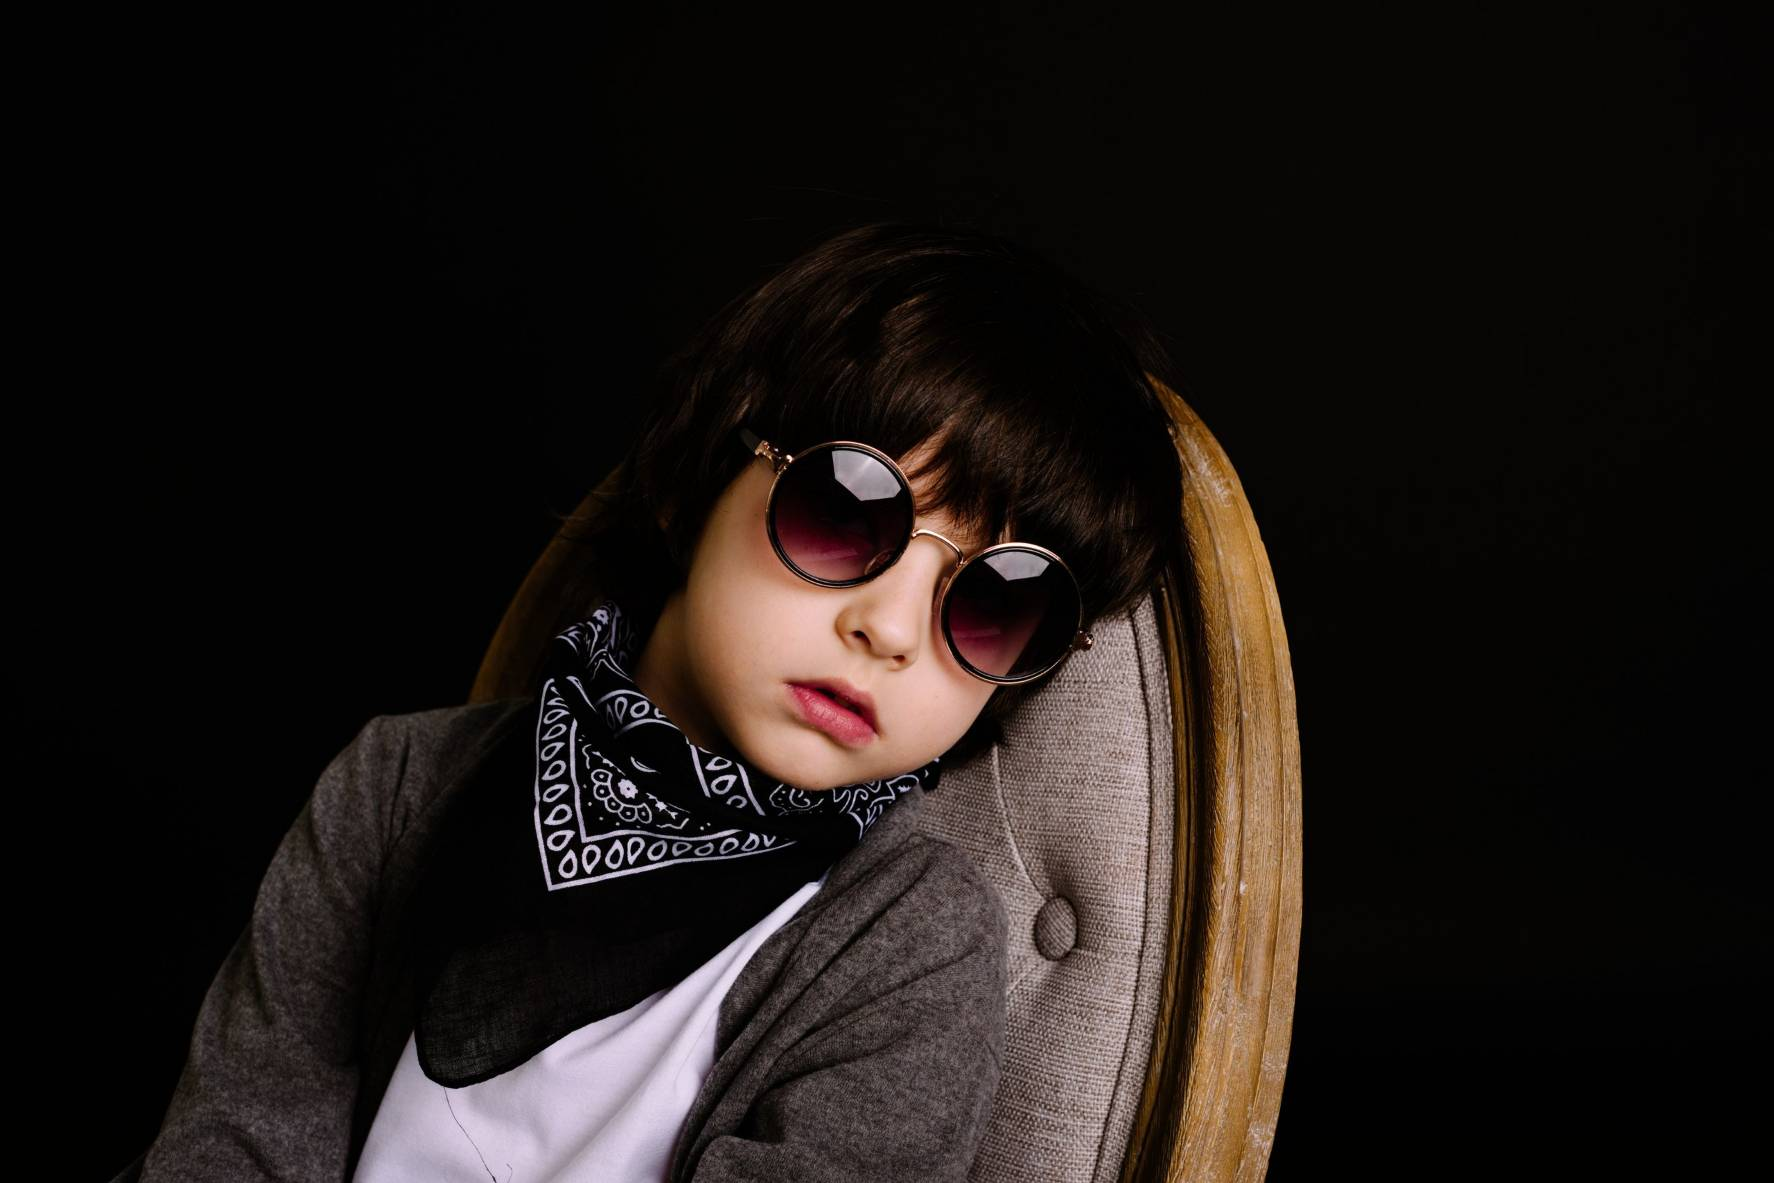 black-background-boredom-boy-1619730 (1)